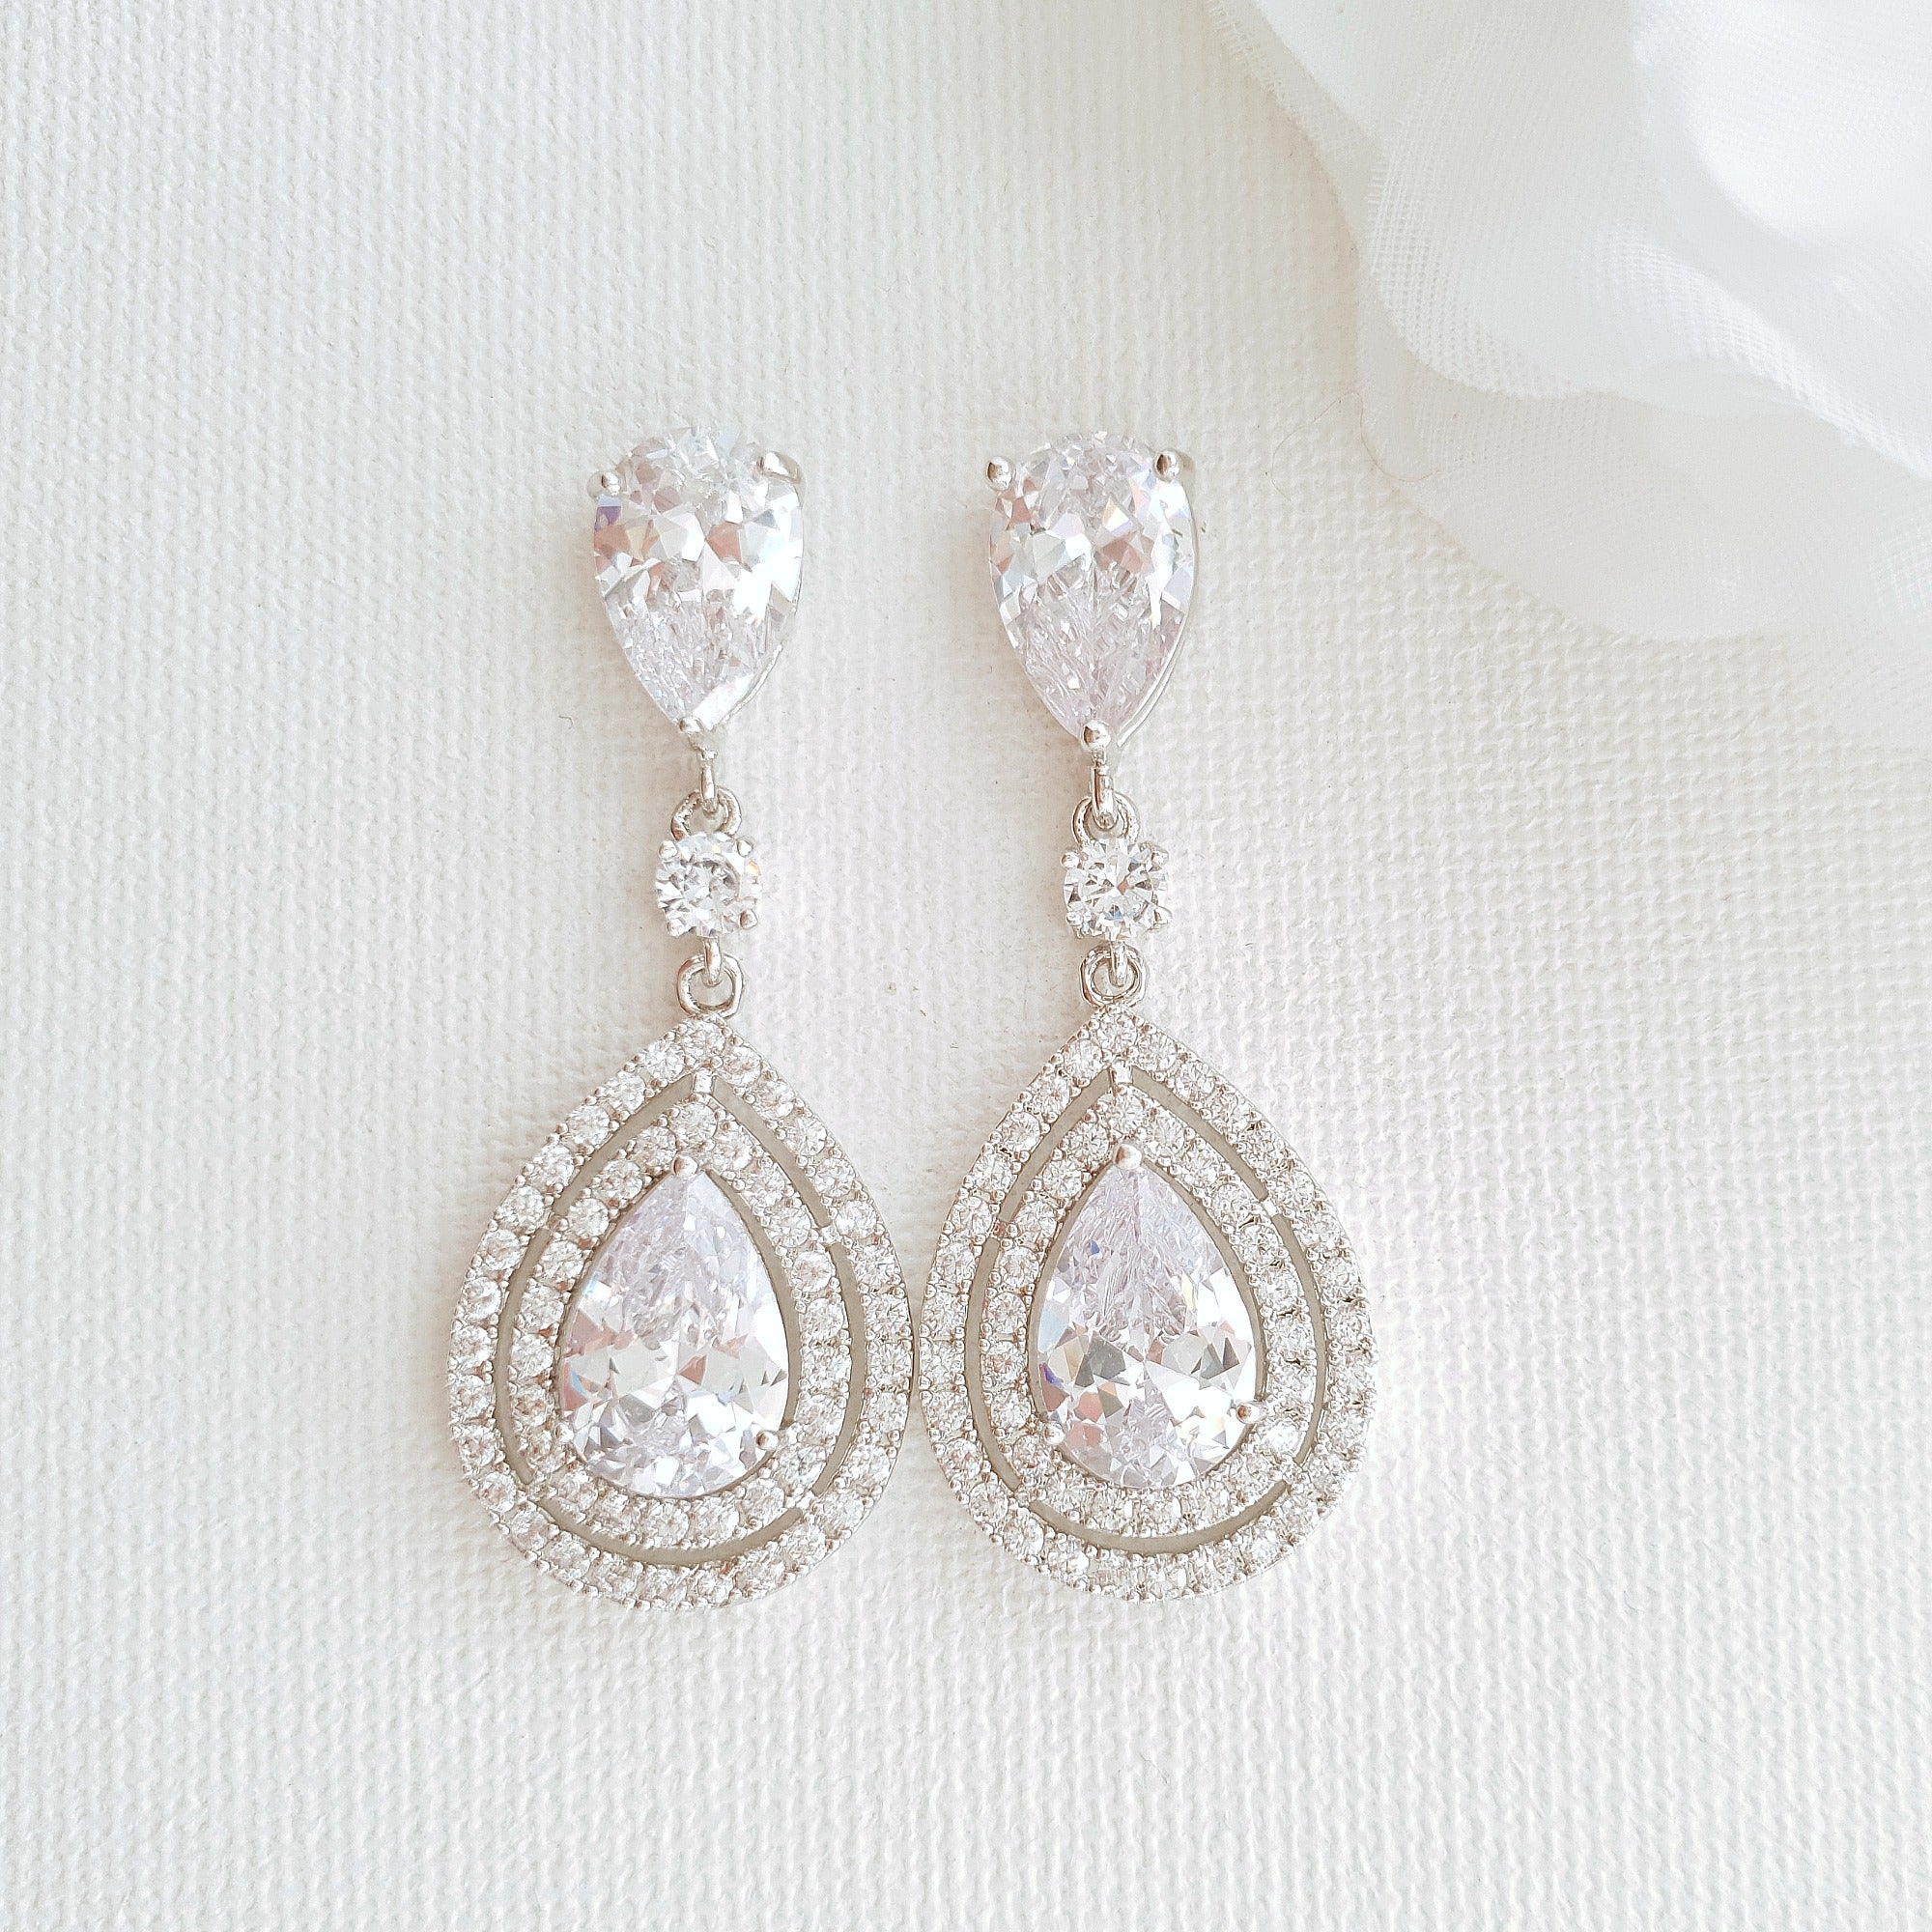 Pear Shaped Cubic Zirconia Drop Earrings for Brides- Joni